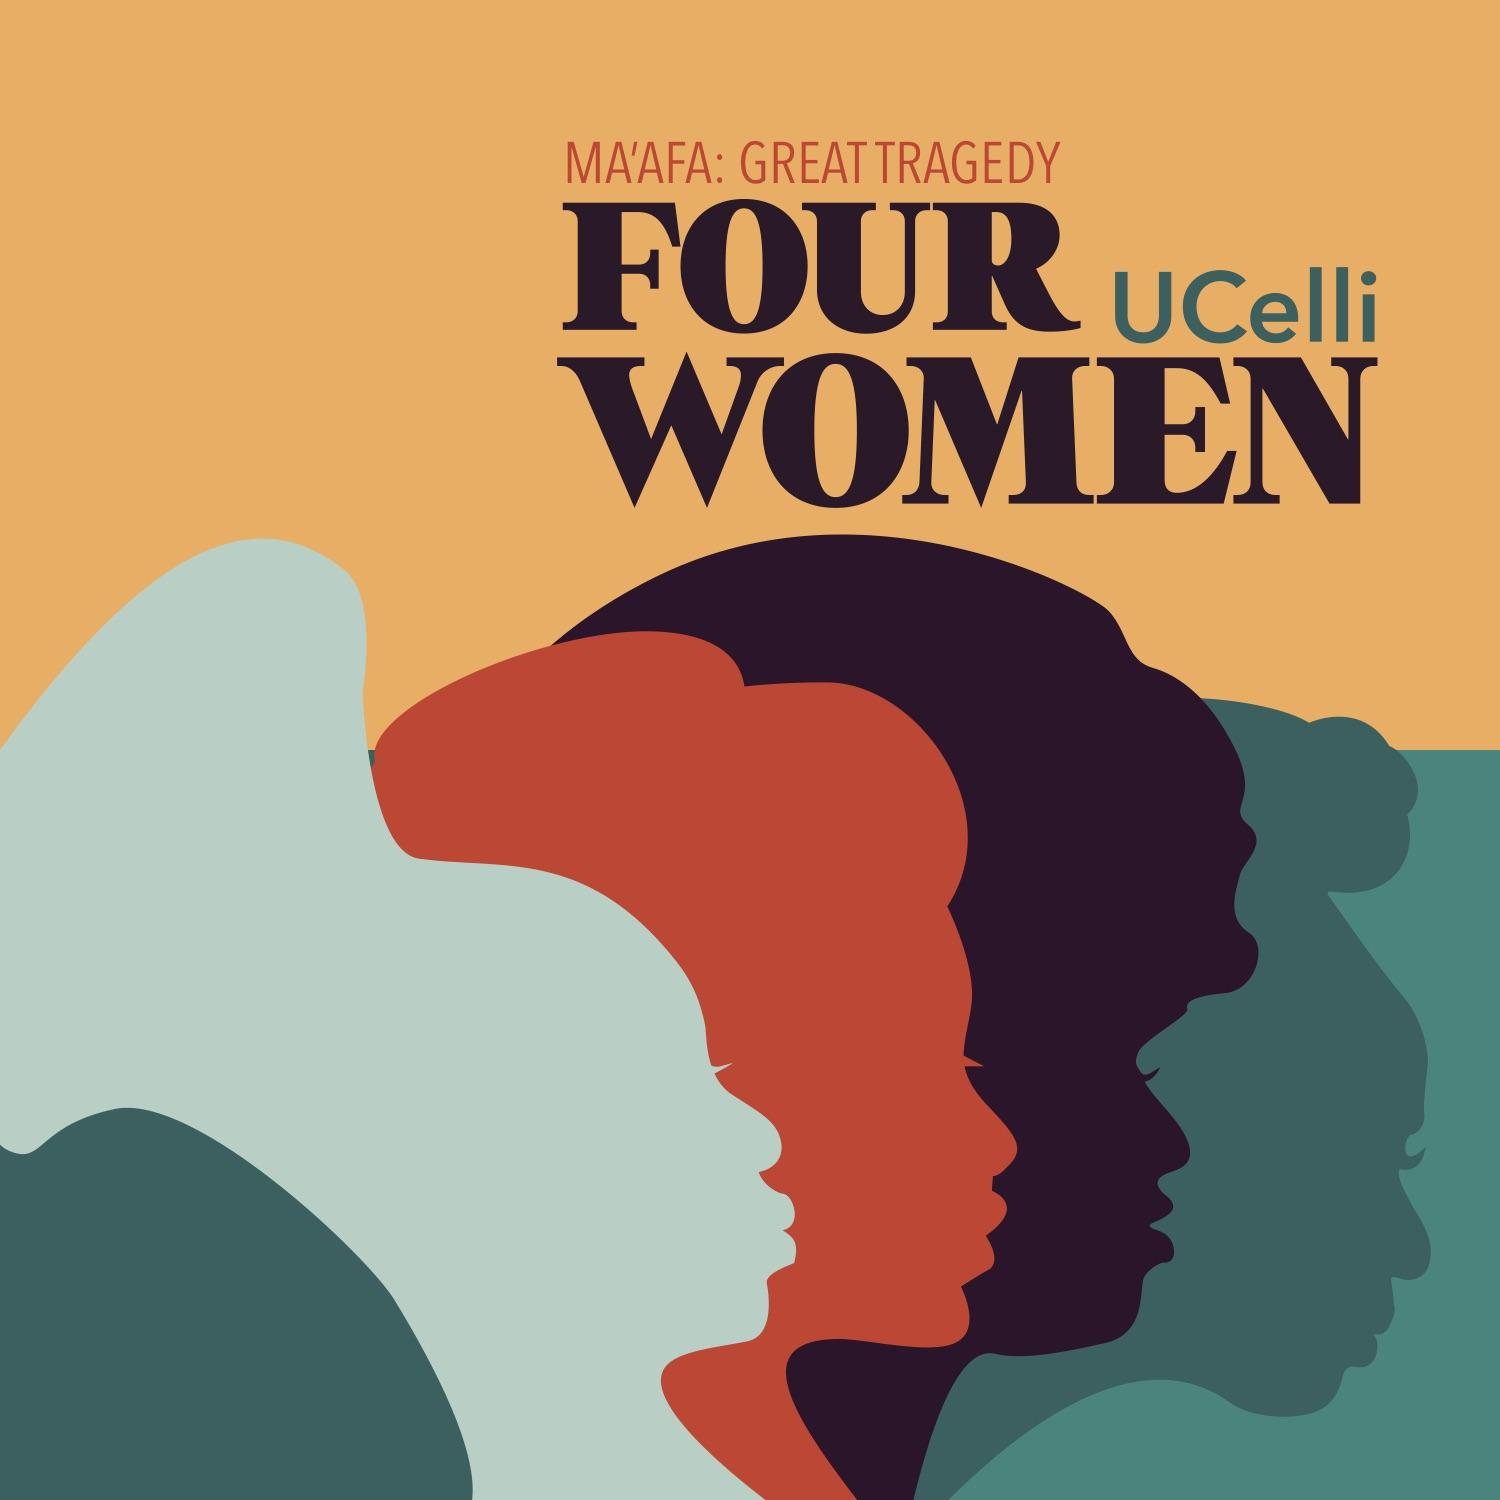 Mark Lomax, II / U Celli — 400: An Afrikan Epic, Vol.7 - Four Women